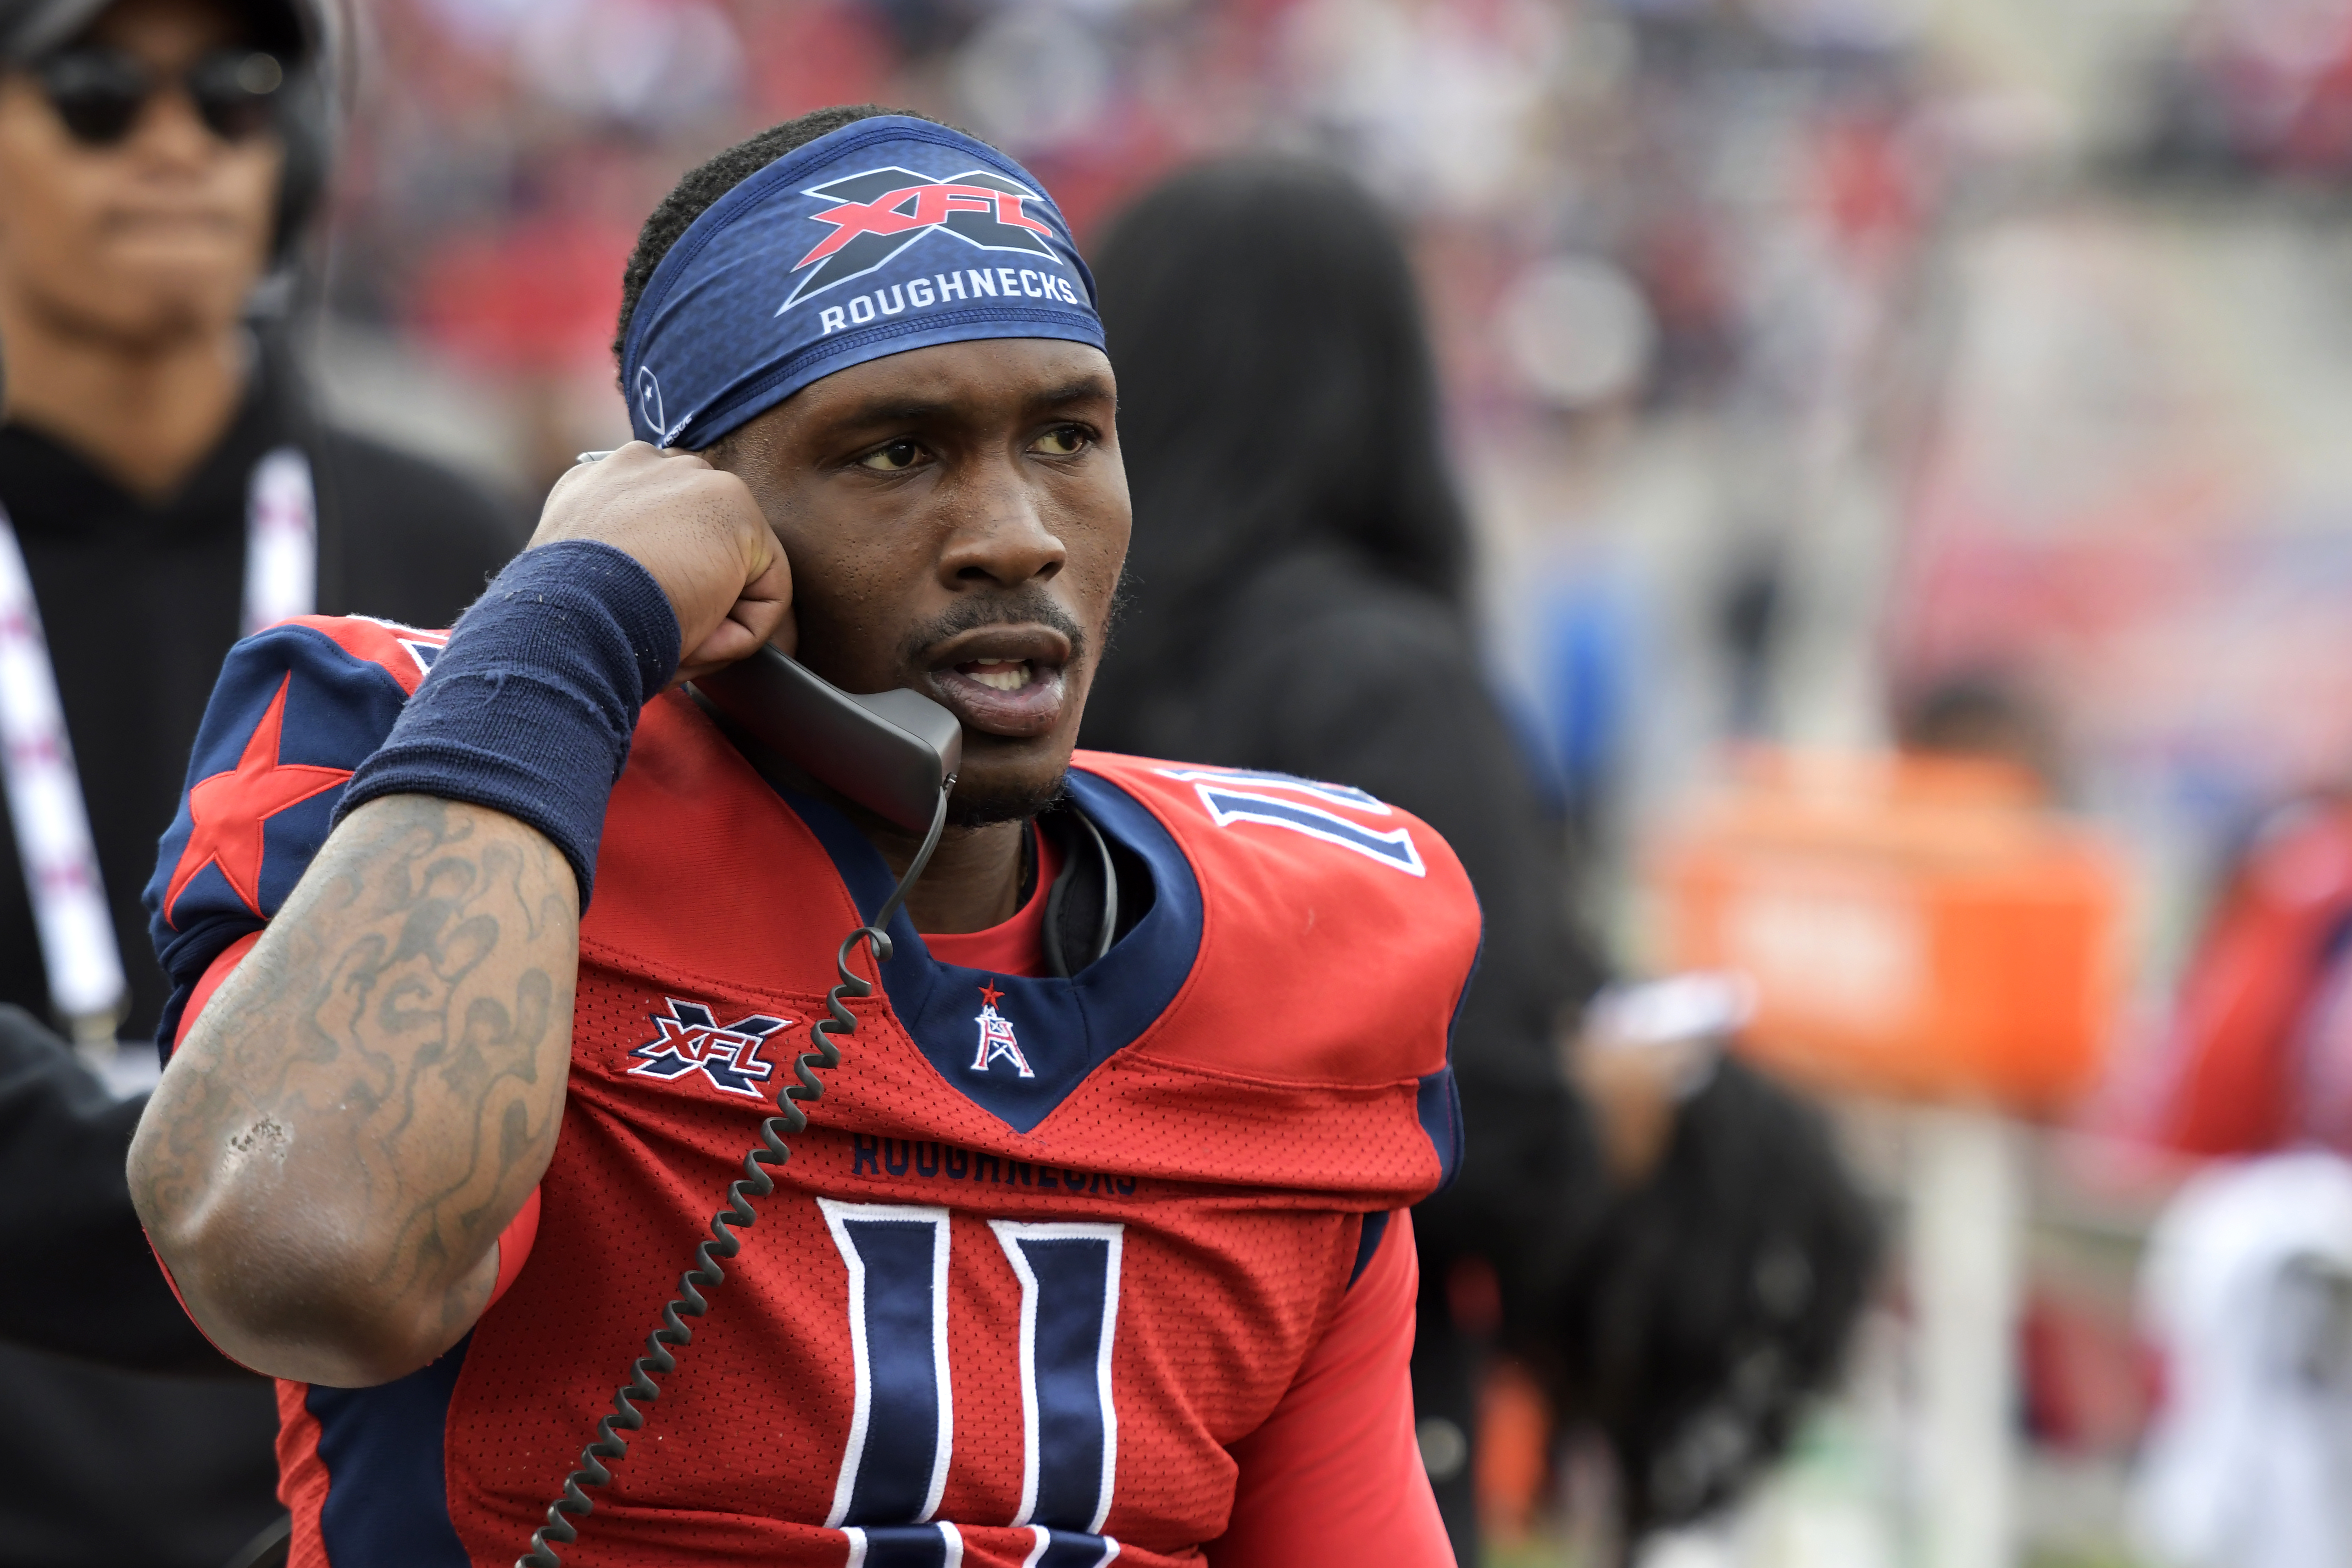 P.J. Walker of the Houston Roughnecks talks on the sideline phone during the XFL game against the Seattle Dragons at TDECU Stadium on March 7, 2020 in Houston, Texas.